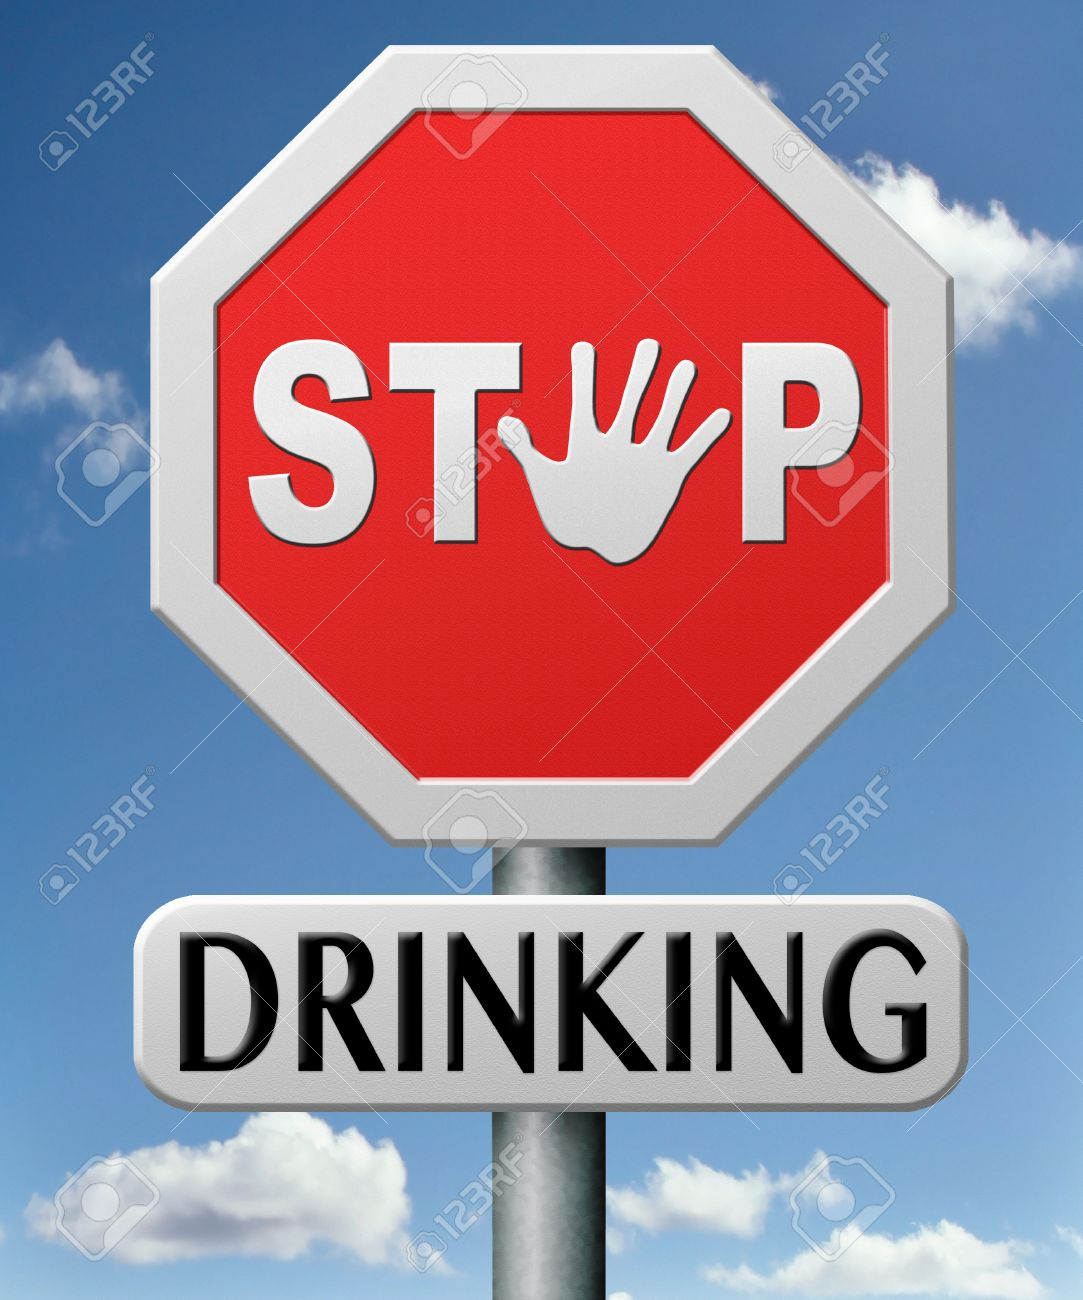 stop drinking and alcohol abuse dependence and addiction to drug create problems Stock Photo - 17463029